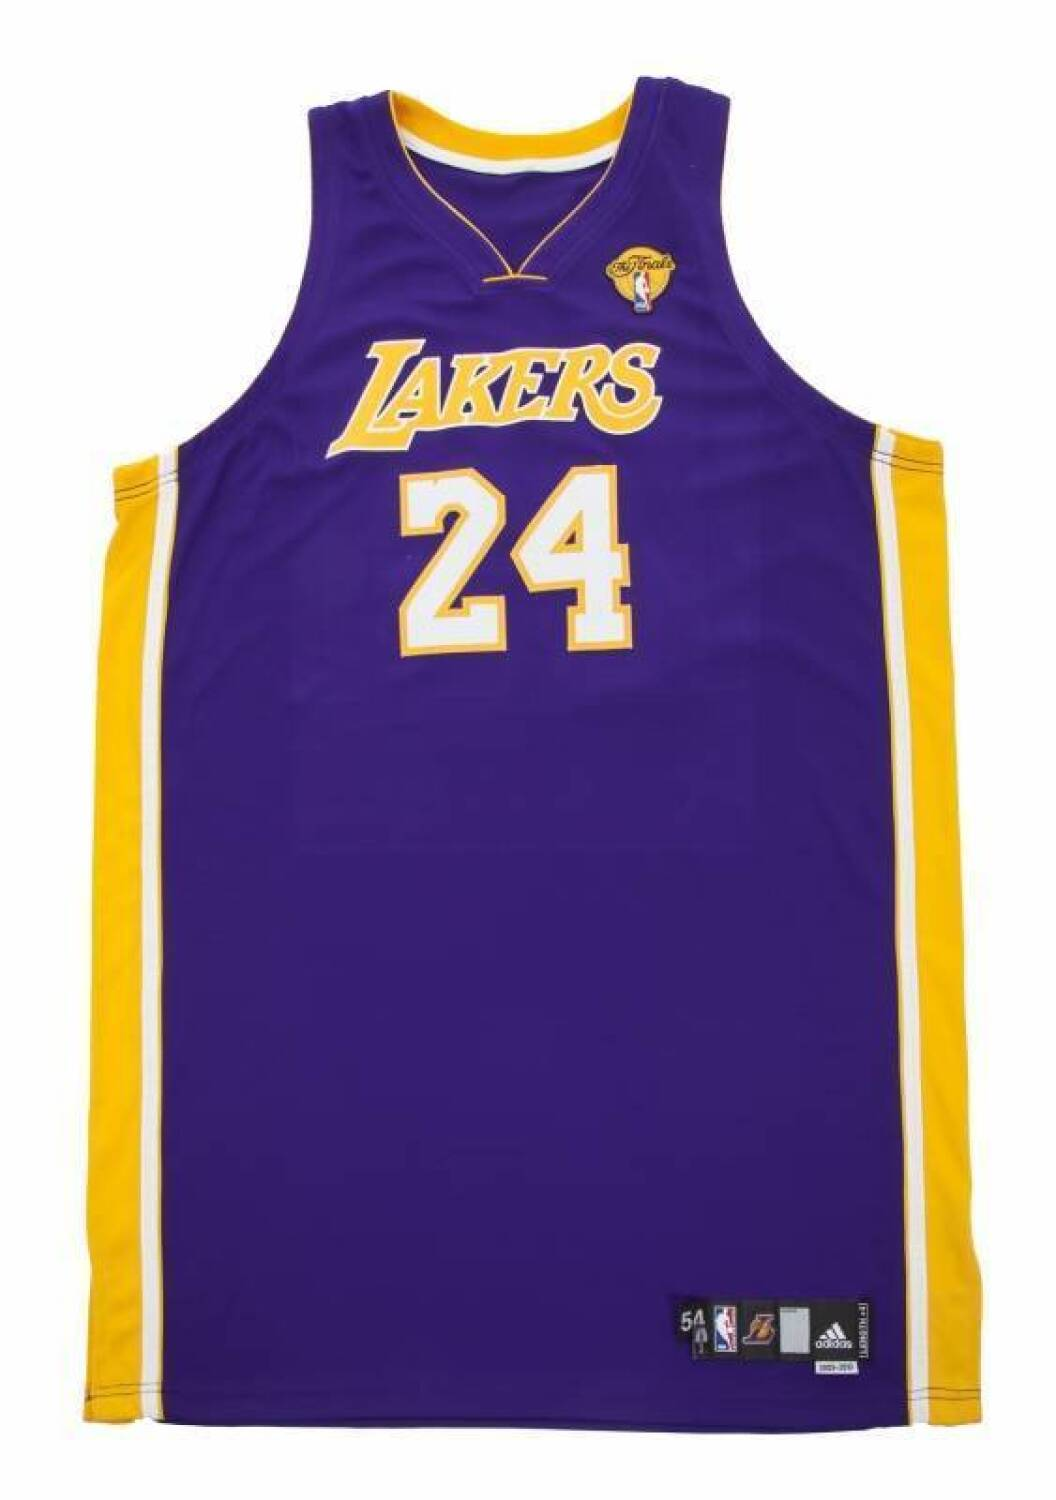 3a7acb94c KOBE BRYANT 2010 NBA FINALS GAME WORN LOS ANGELES LAKERS JERSEY - Current  price   2250